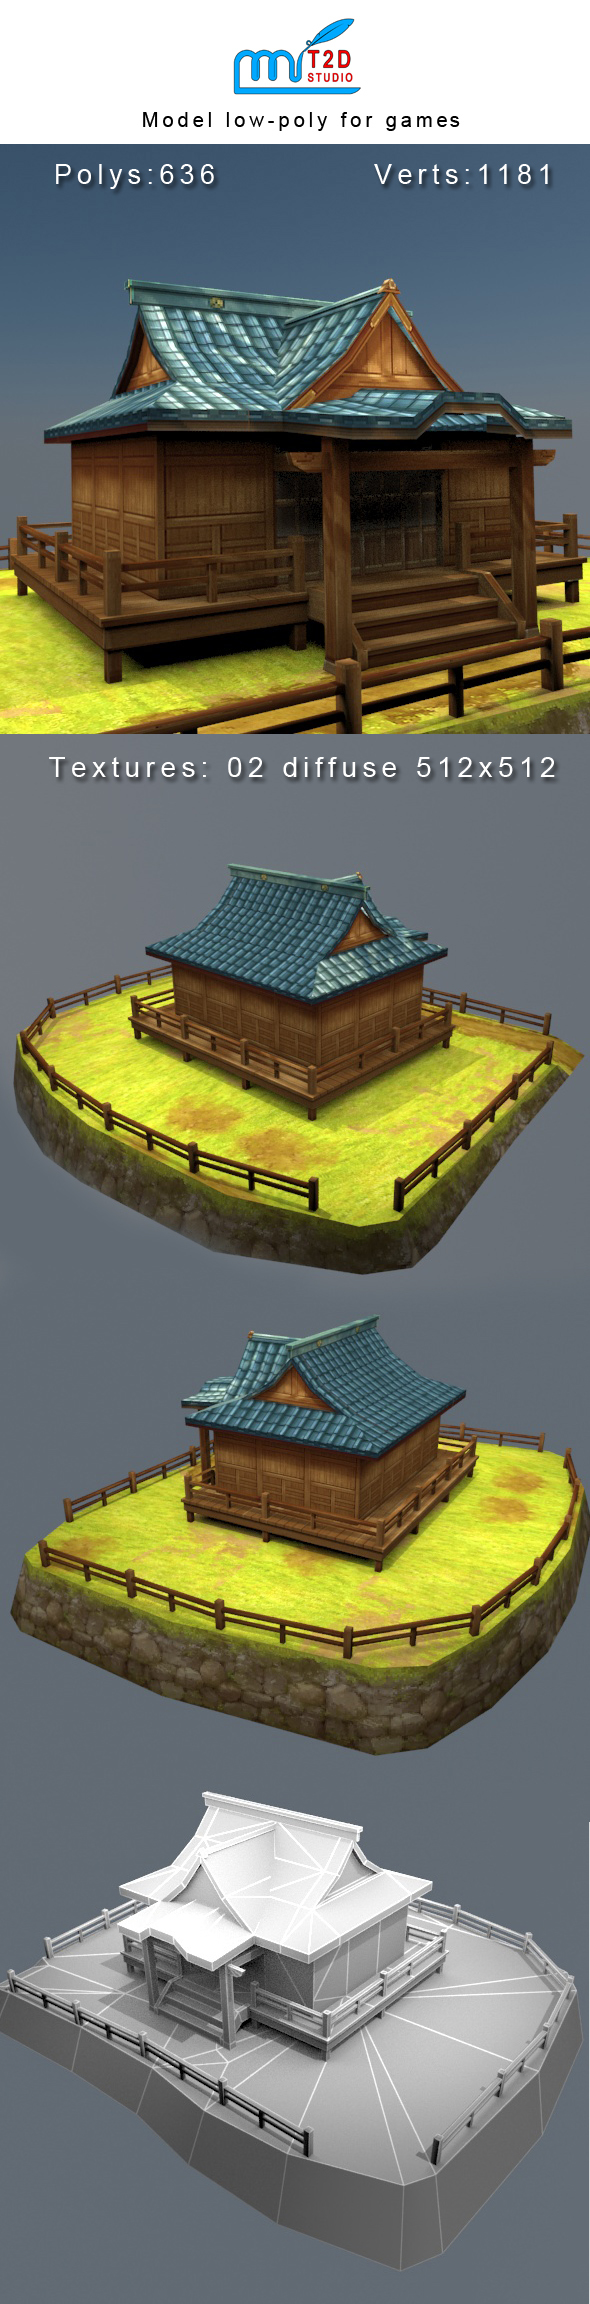 house low-poly for games - 3DOcean Item for Sale